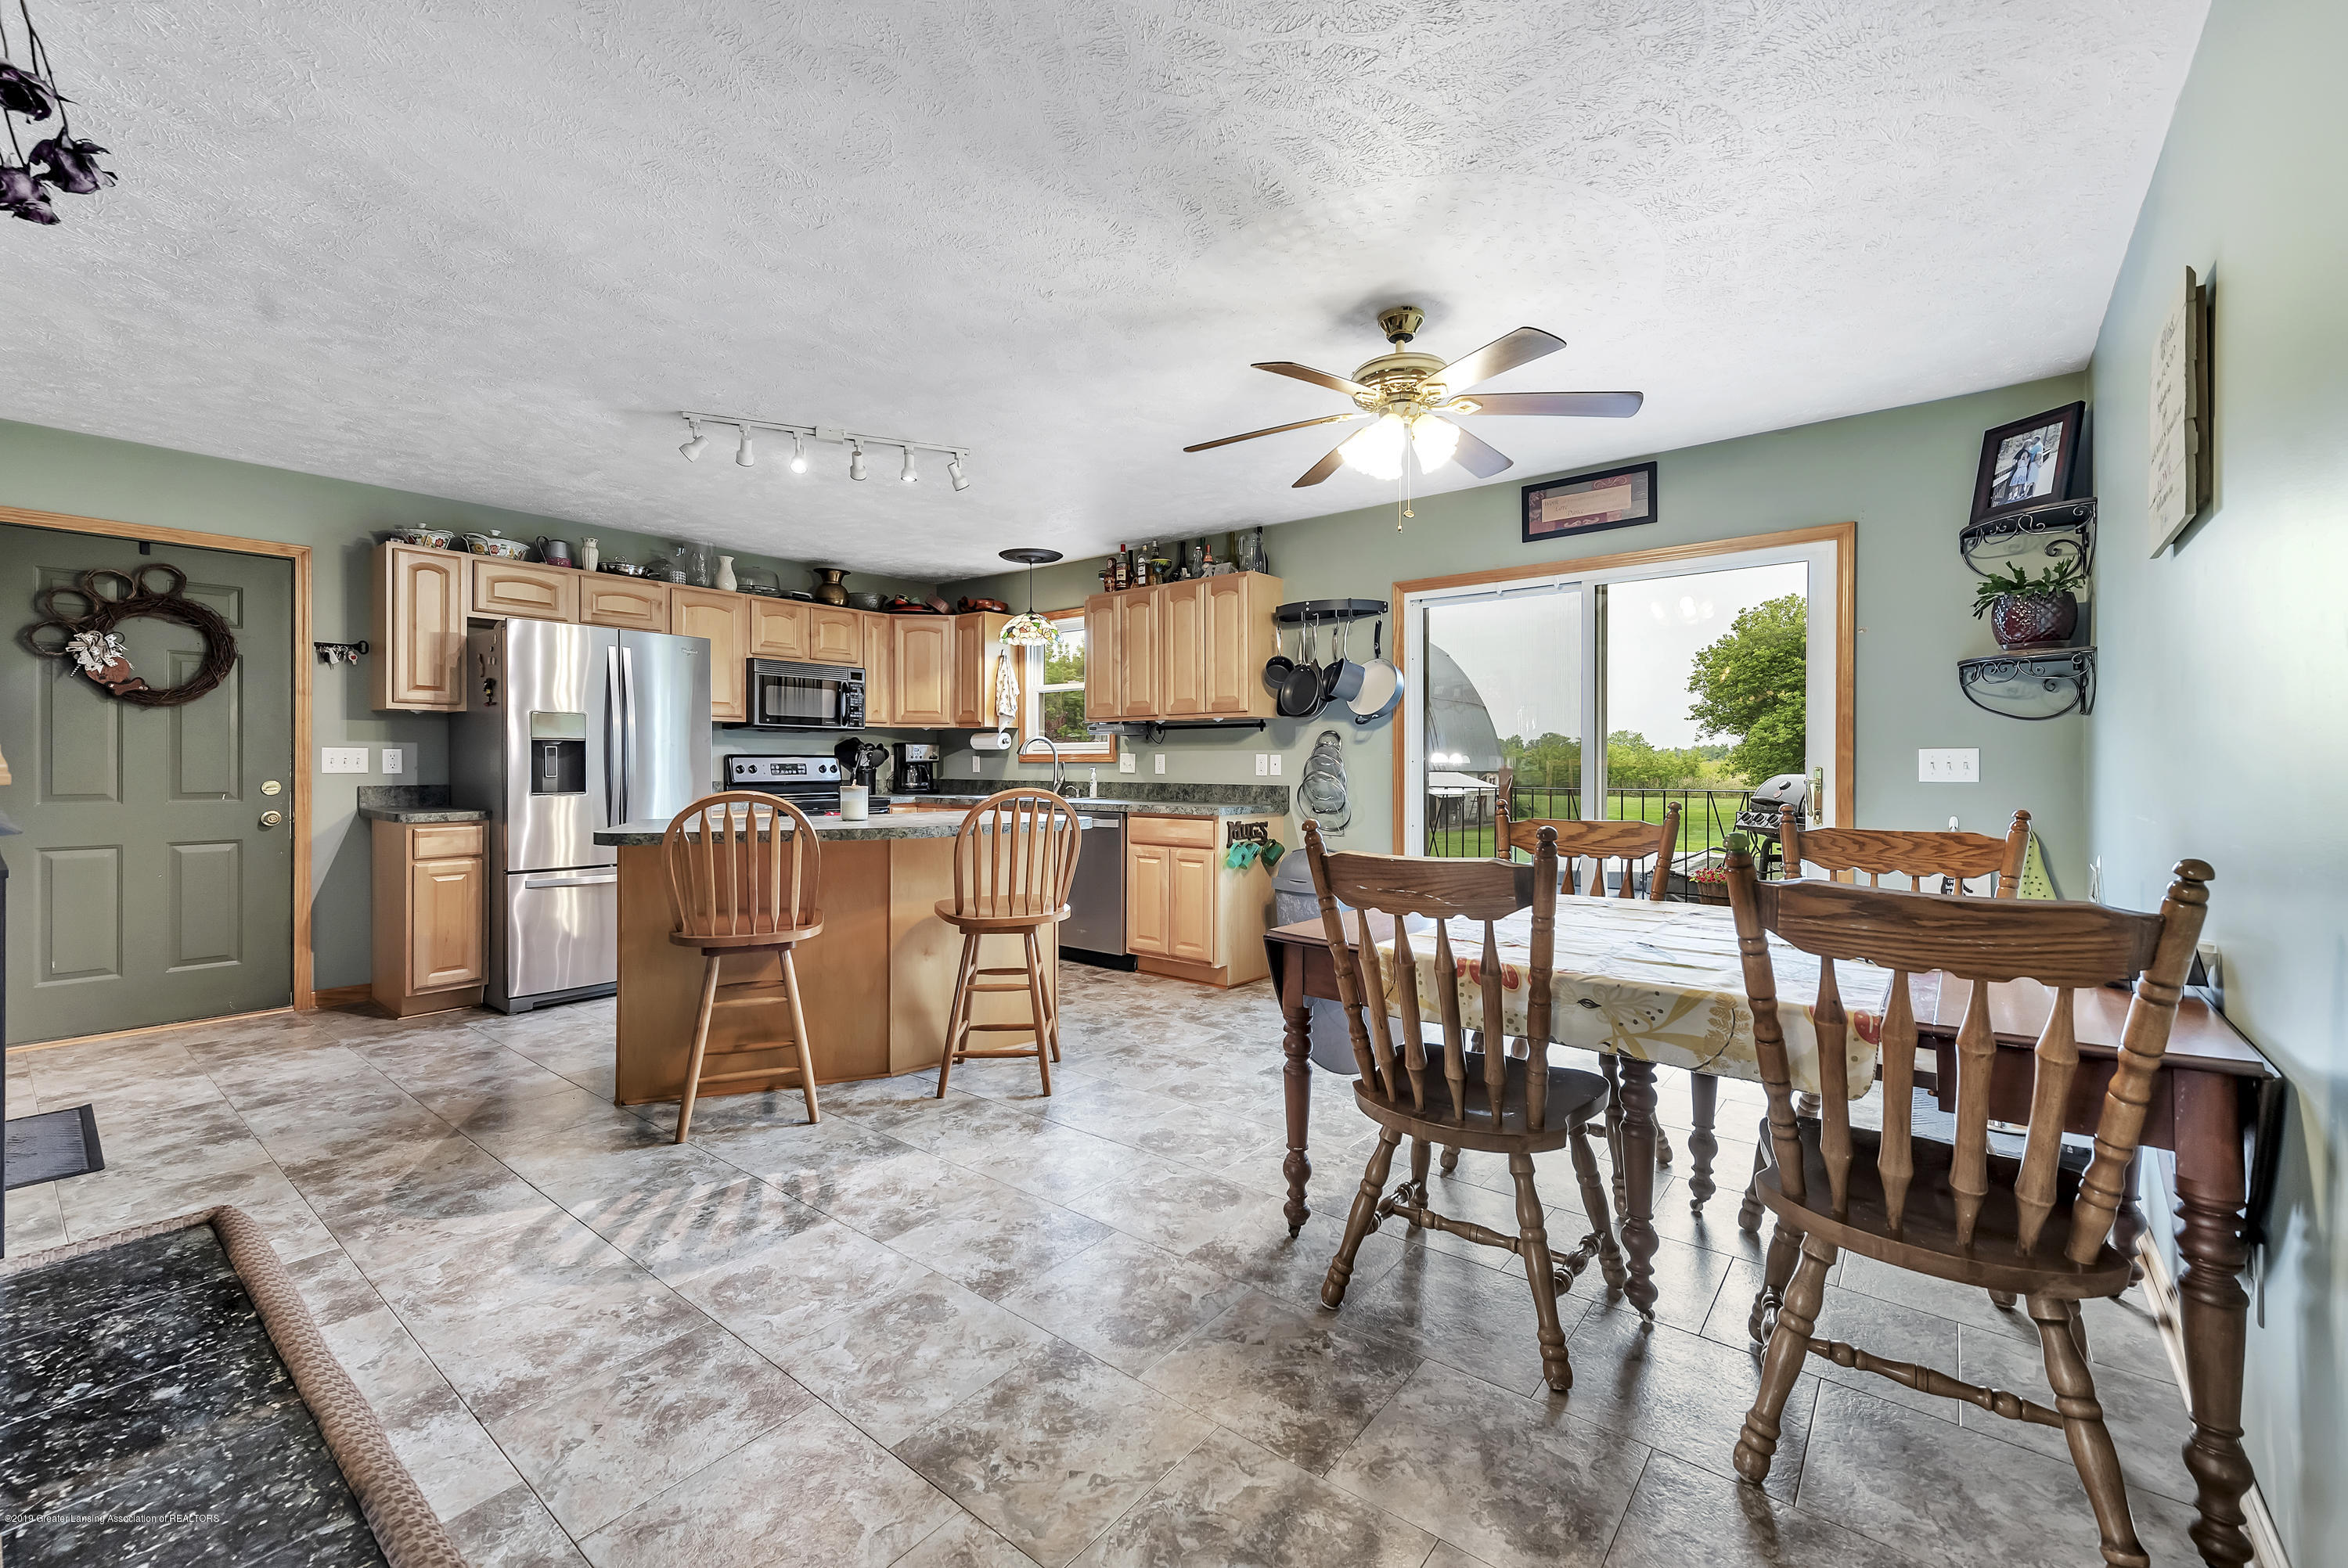 5674 W Barnes Rd - 5674-West-Barnes-Road-Eaton-Michigan-win - 12